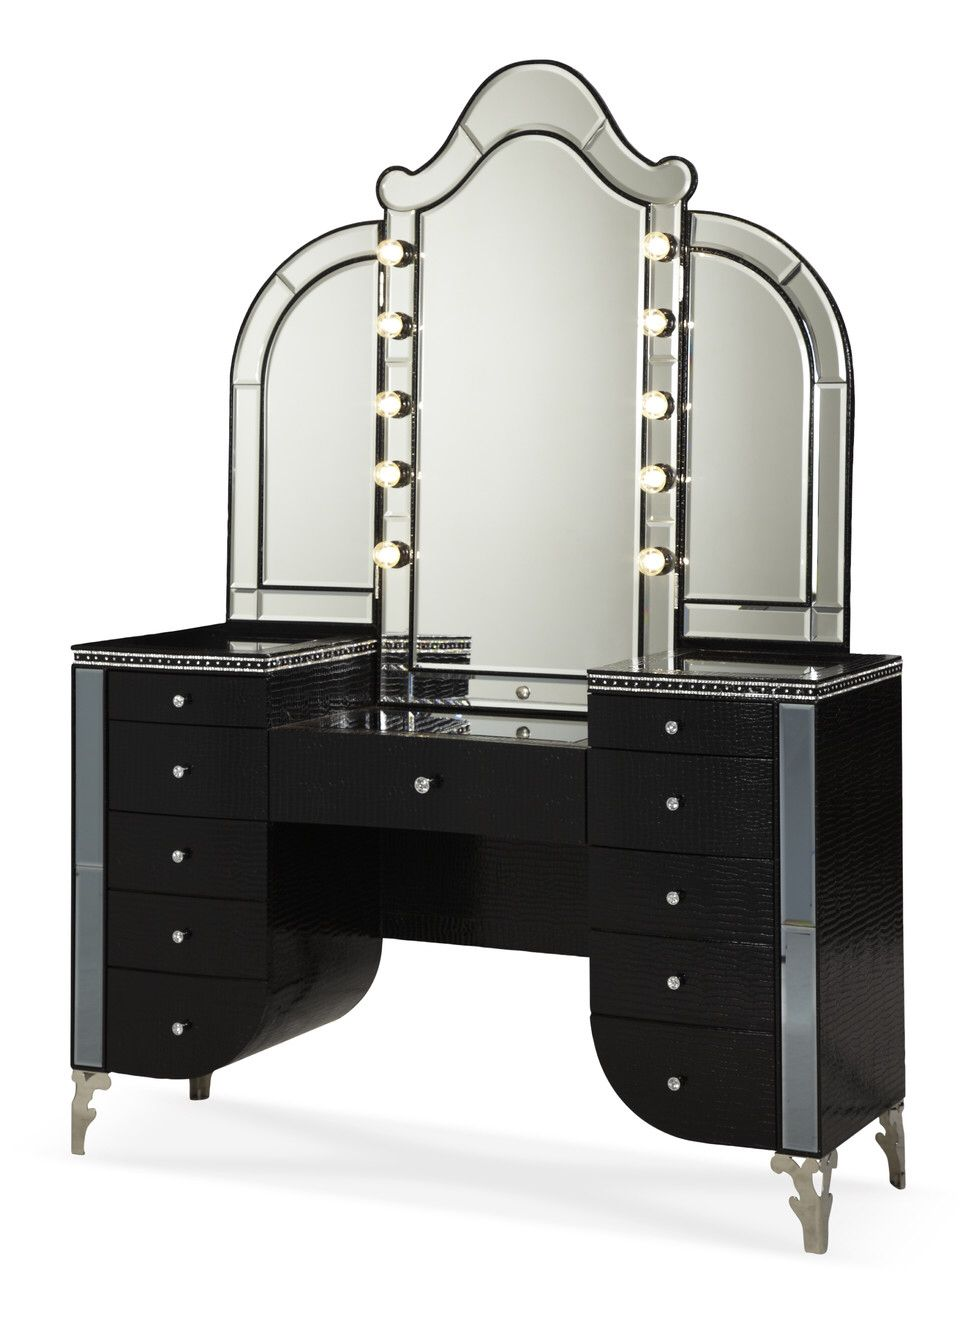 Hollywood Swank Vanity With Mirror In 2020 Hollywood Swank